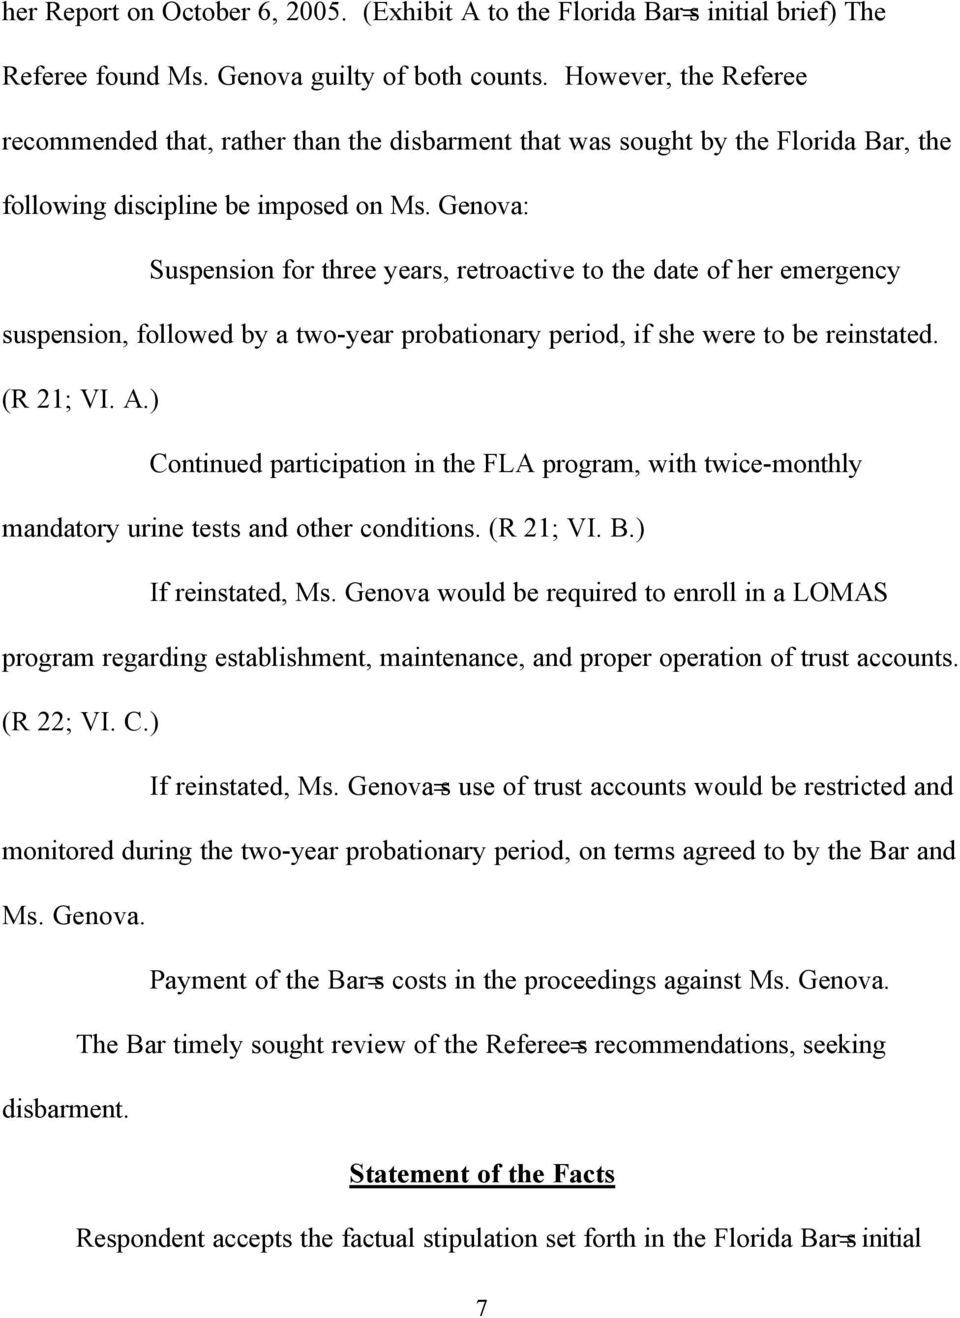 Genova: $ Suspension for three years, retroactive to the date of her emergency suspension, followed by a two-year probationary period, if she were to be reinstated. (R 21; VI. A.